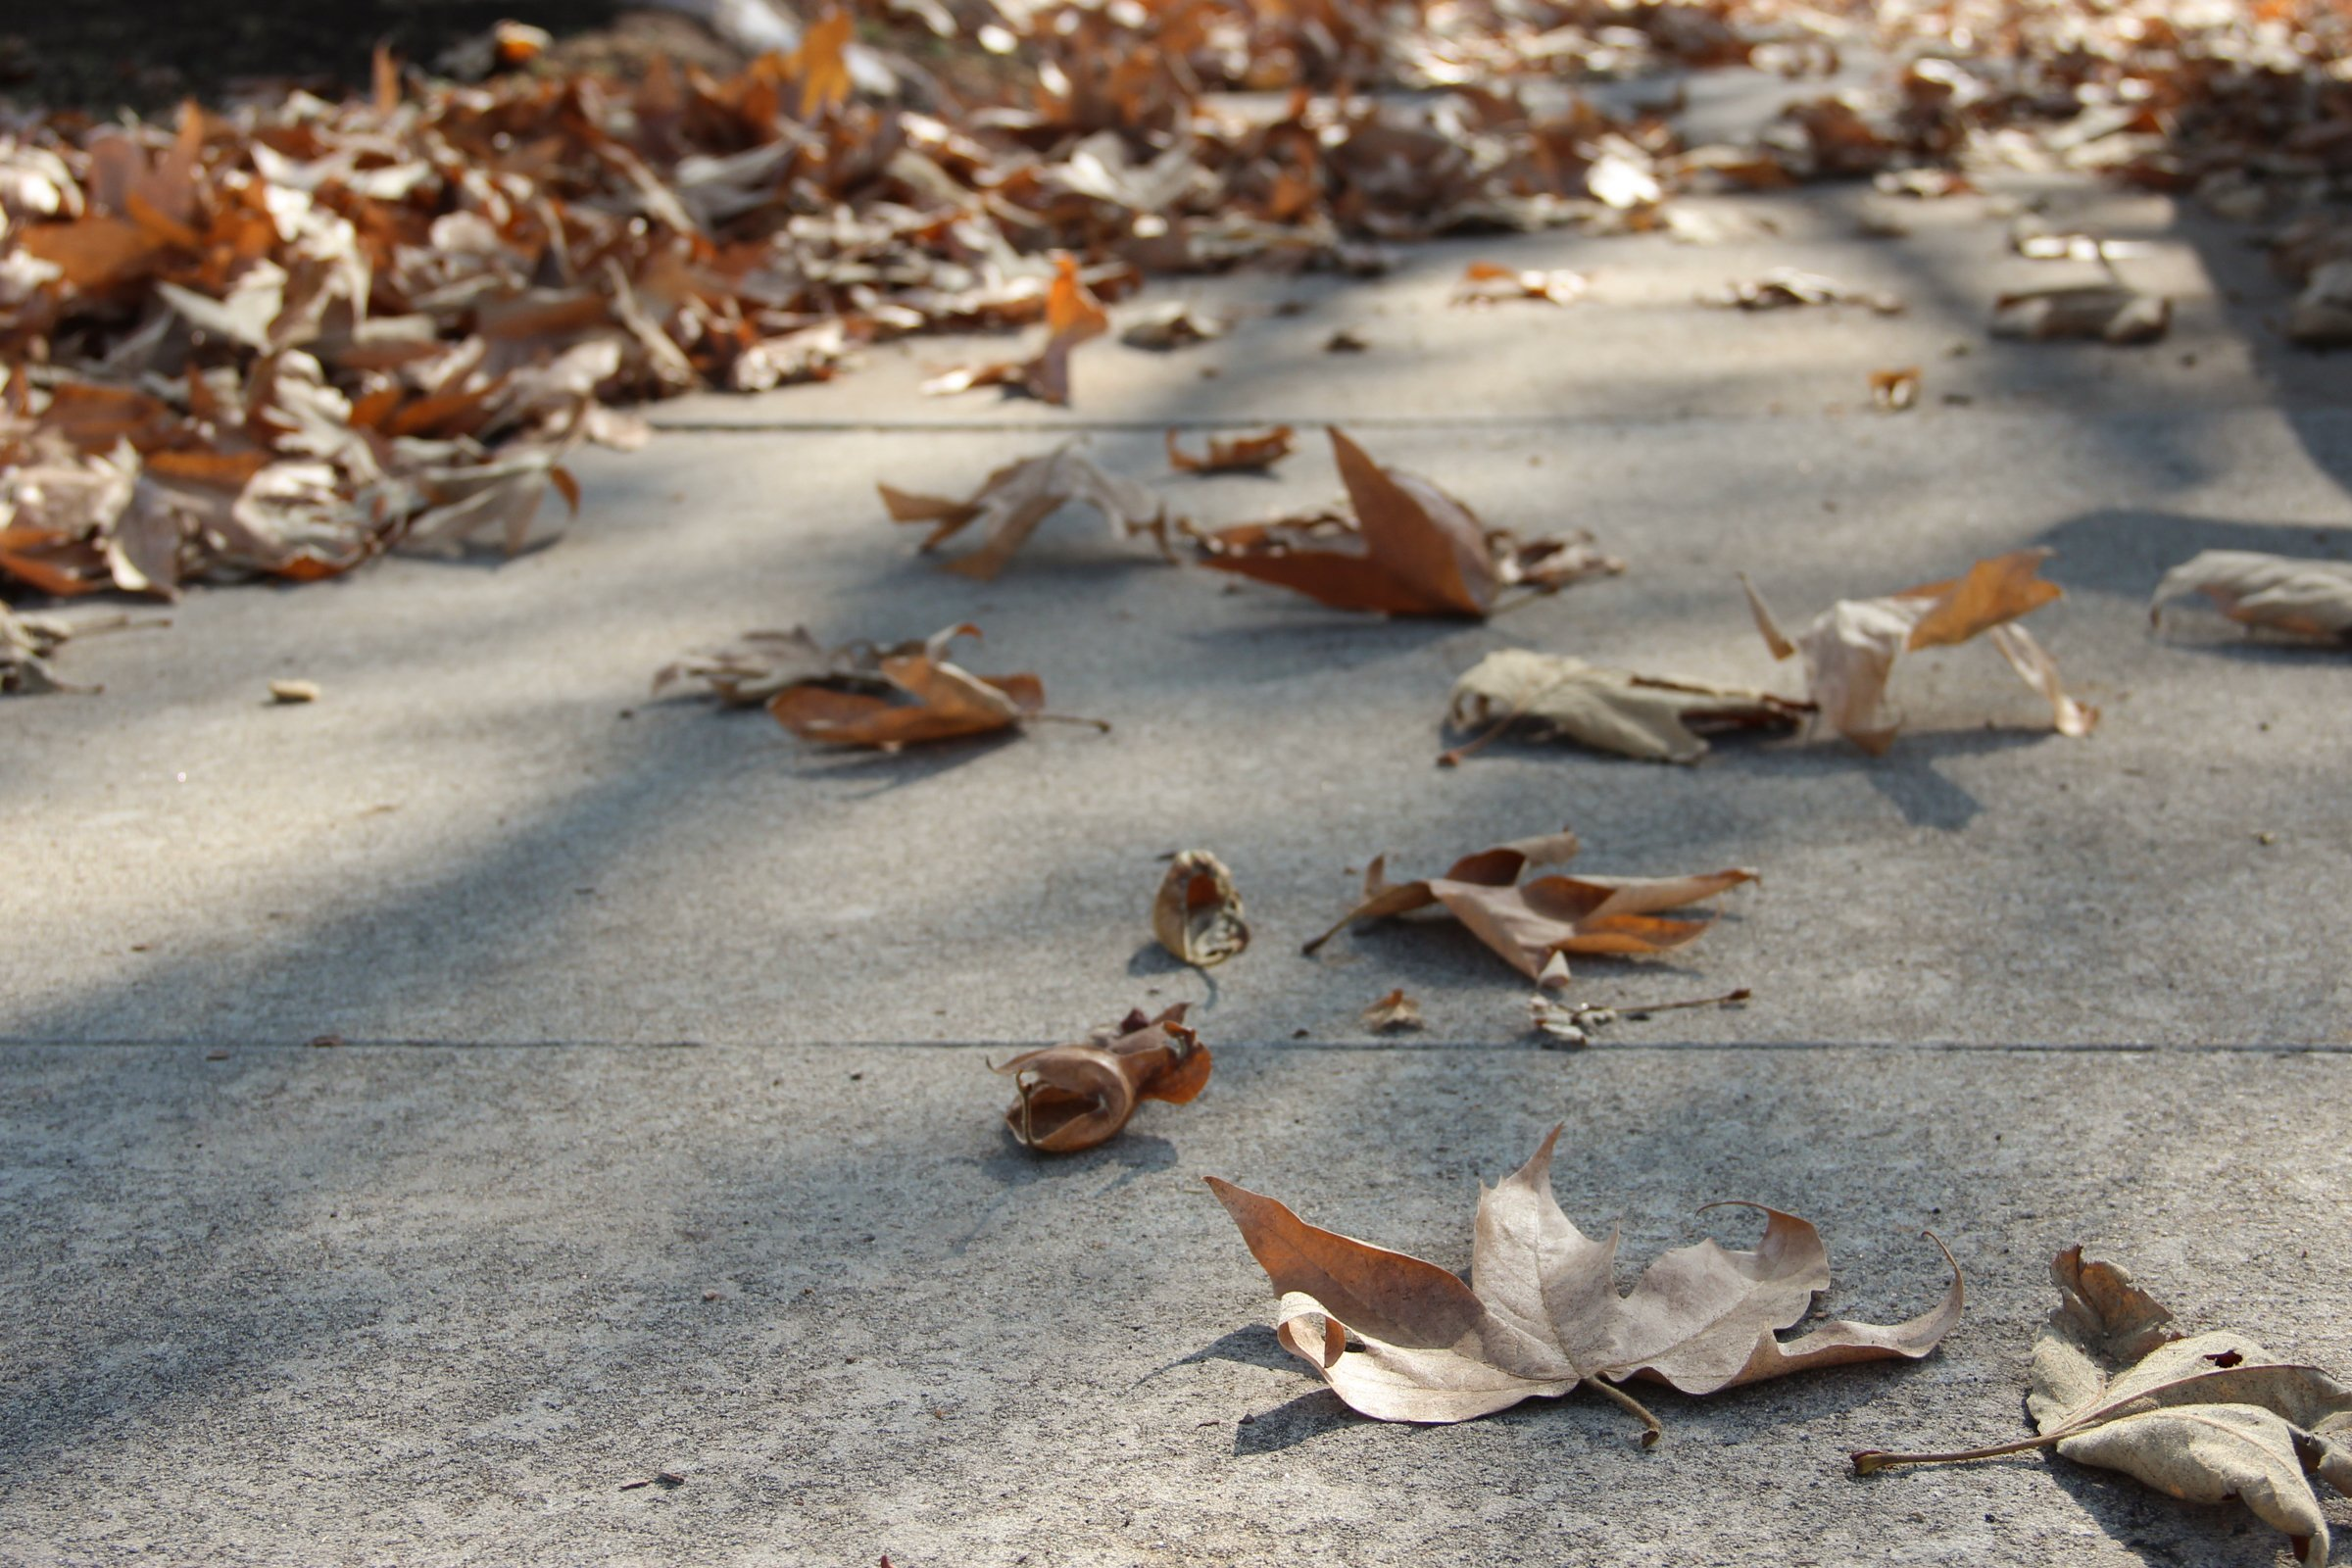 Scattered Dry Leaves On Concrete Sidewalk